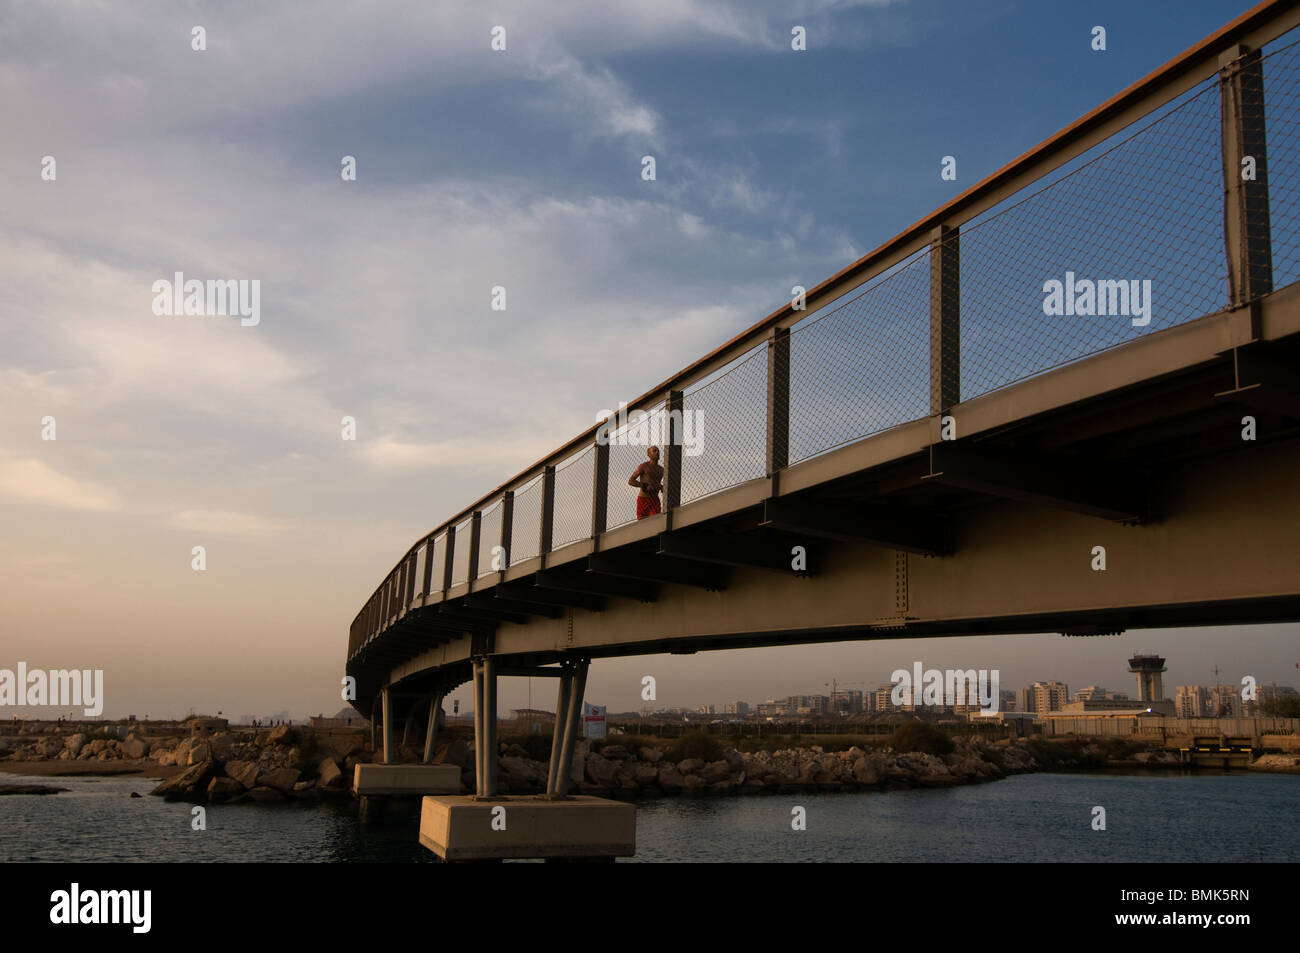 A bridge over the estuary of the Yarkon or Yarqon river which flows west through Gush Dan conurbation into the Mediterranean - Stock Image